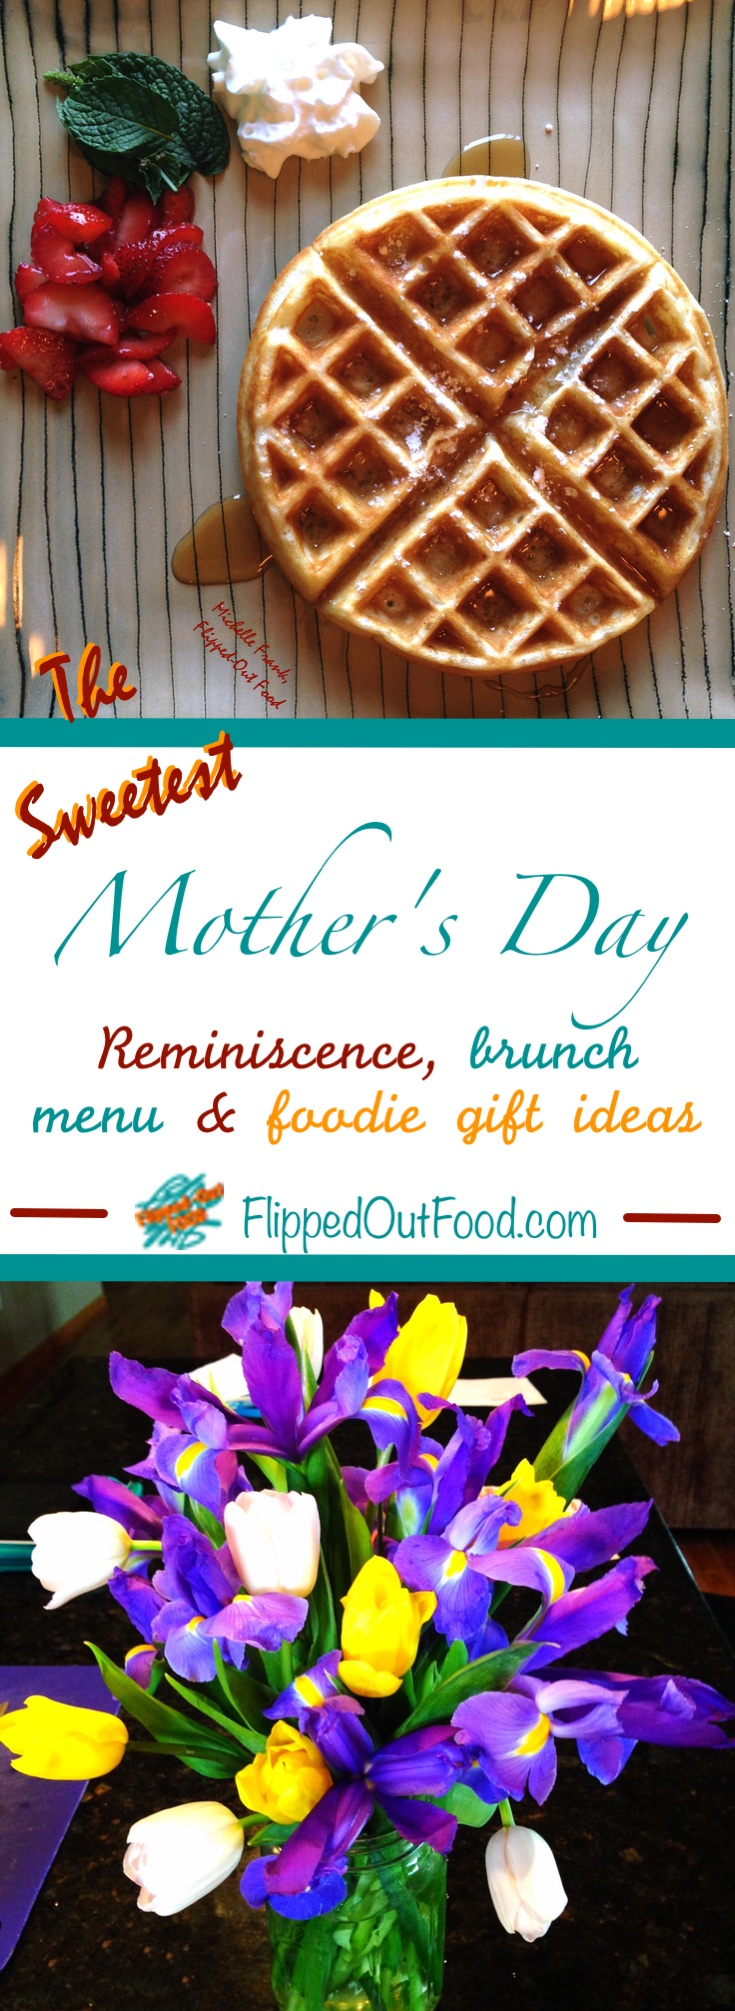 Reflections on my sweetest Mother's Day, along with my favorite brunch menu and some food-related, super-cute Mother's Day Gift ideas.